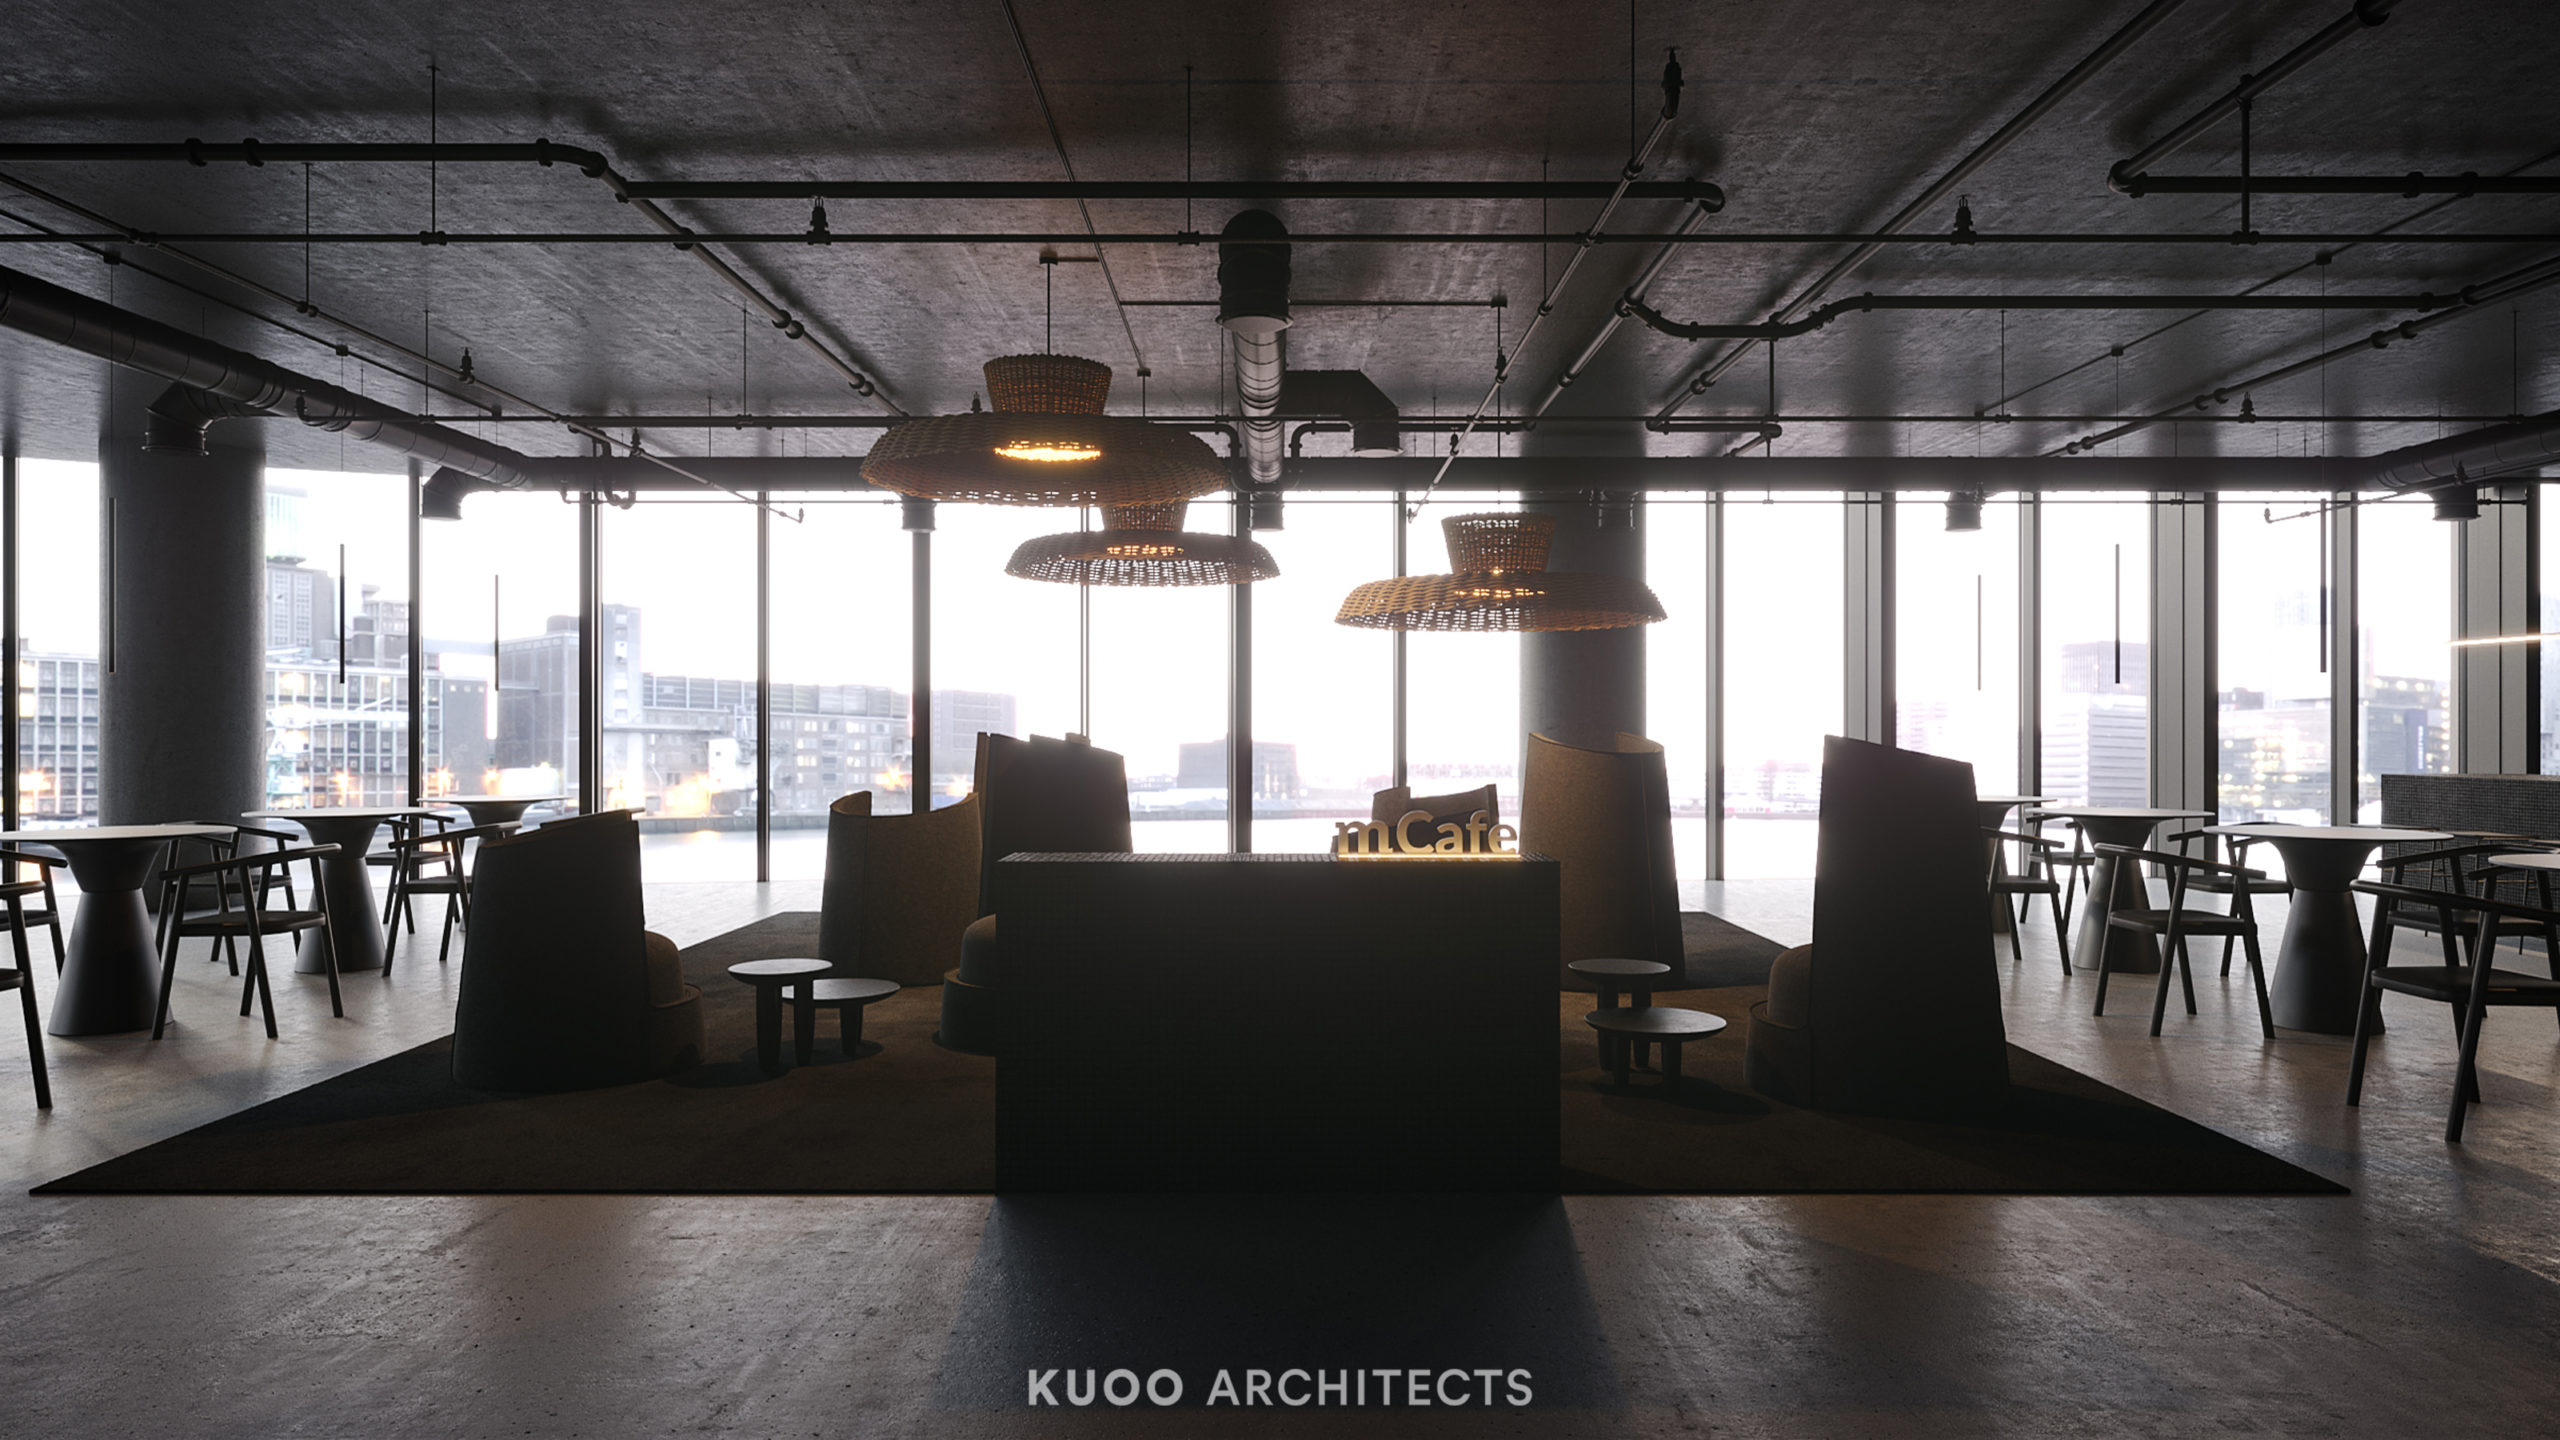 kuoo_architects_mcafe_7